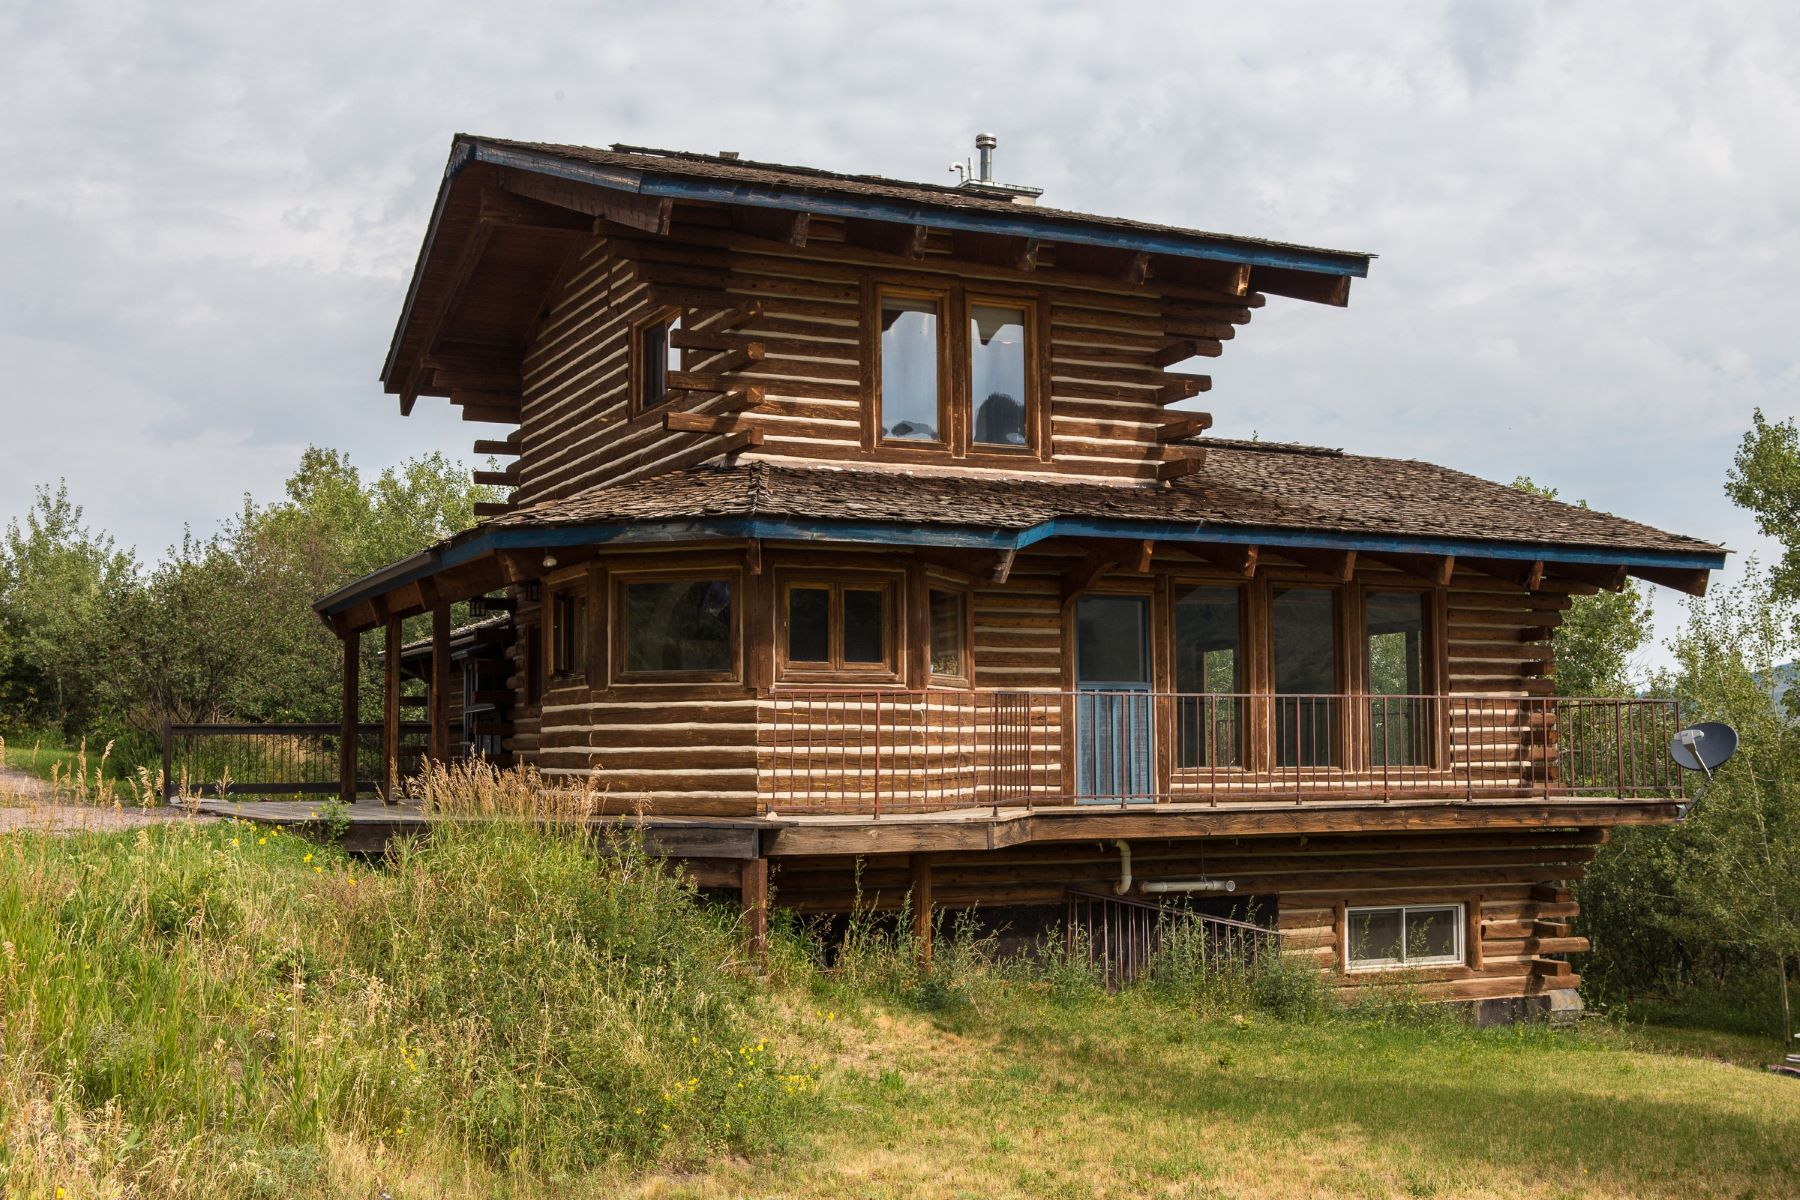 Single Family Home for Sale at Chalet Style Log Home on Prime Lot 31135 Broken Talon Trail Oak Creek, Colorado 80467 United States